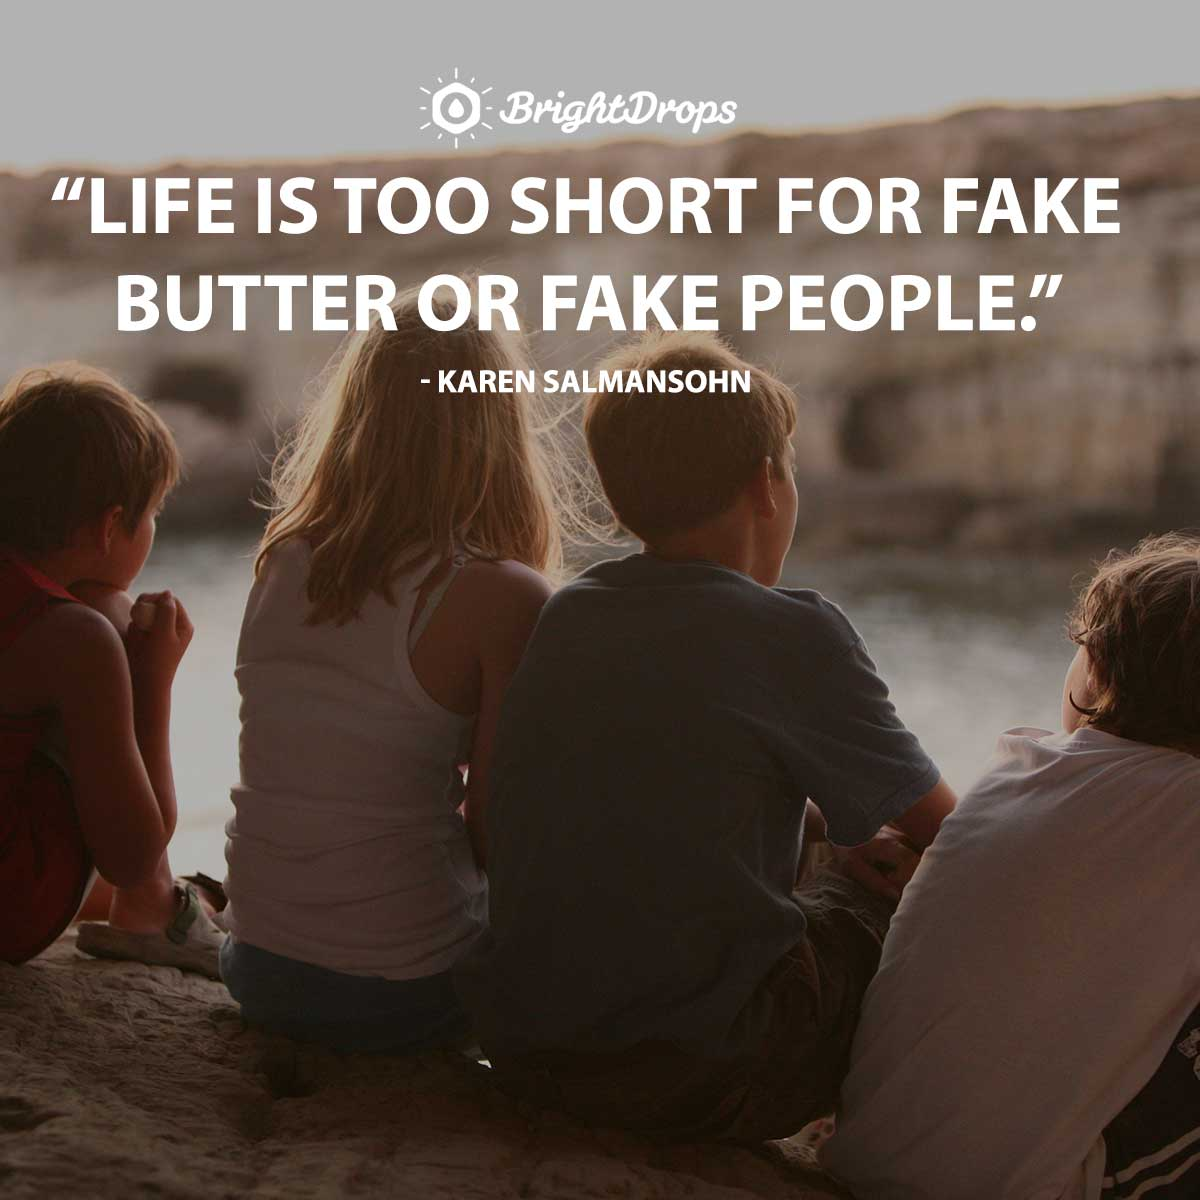 Life is too short for fake butter or fake people. – Karen Salmansohn